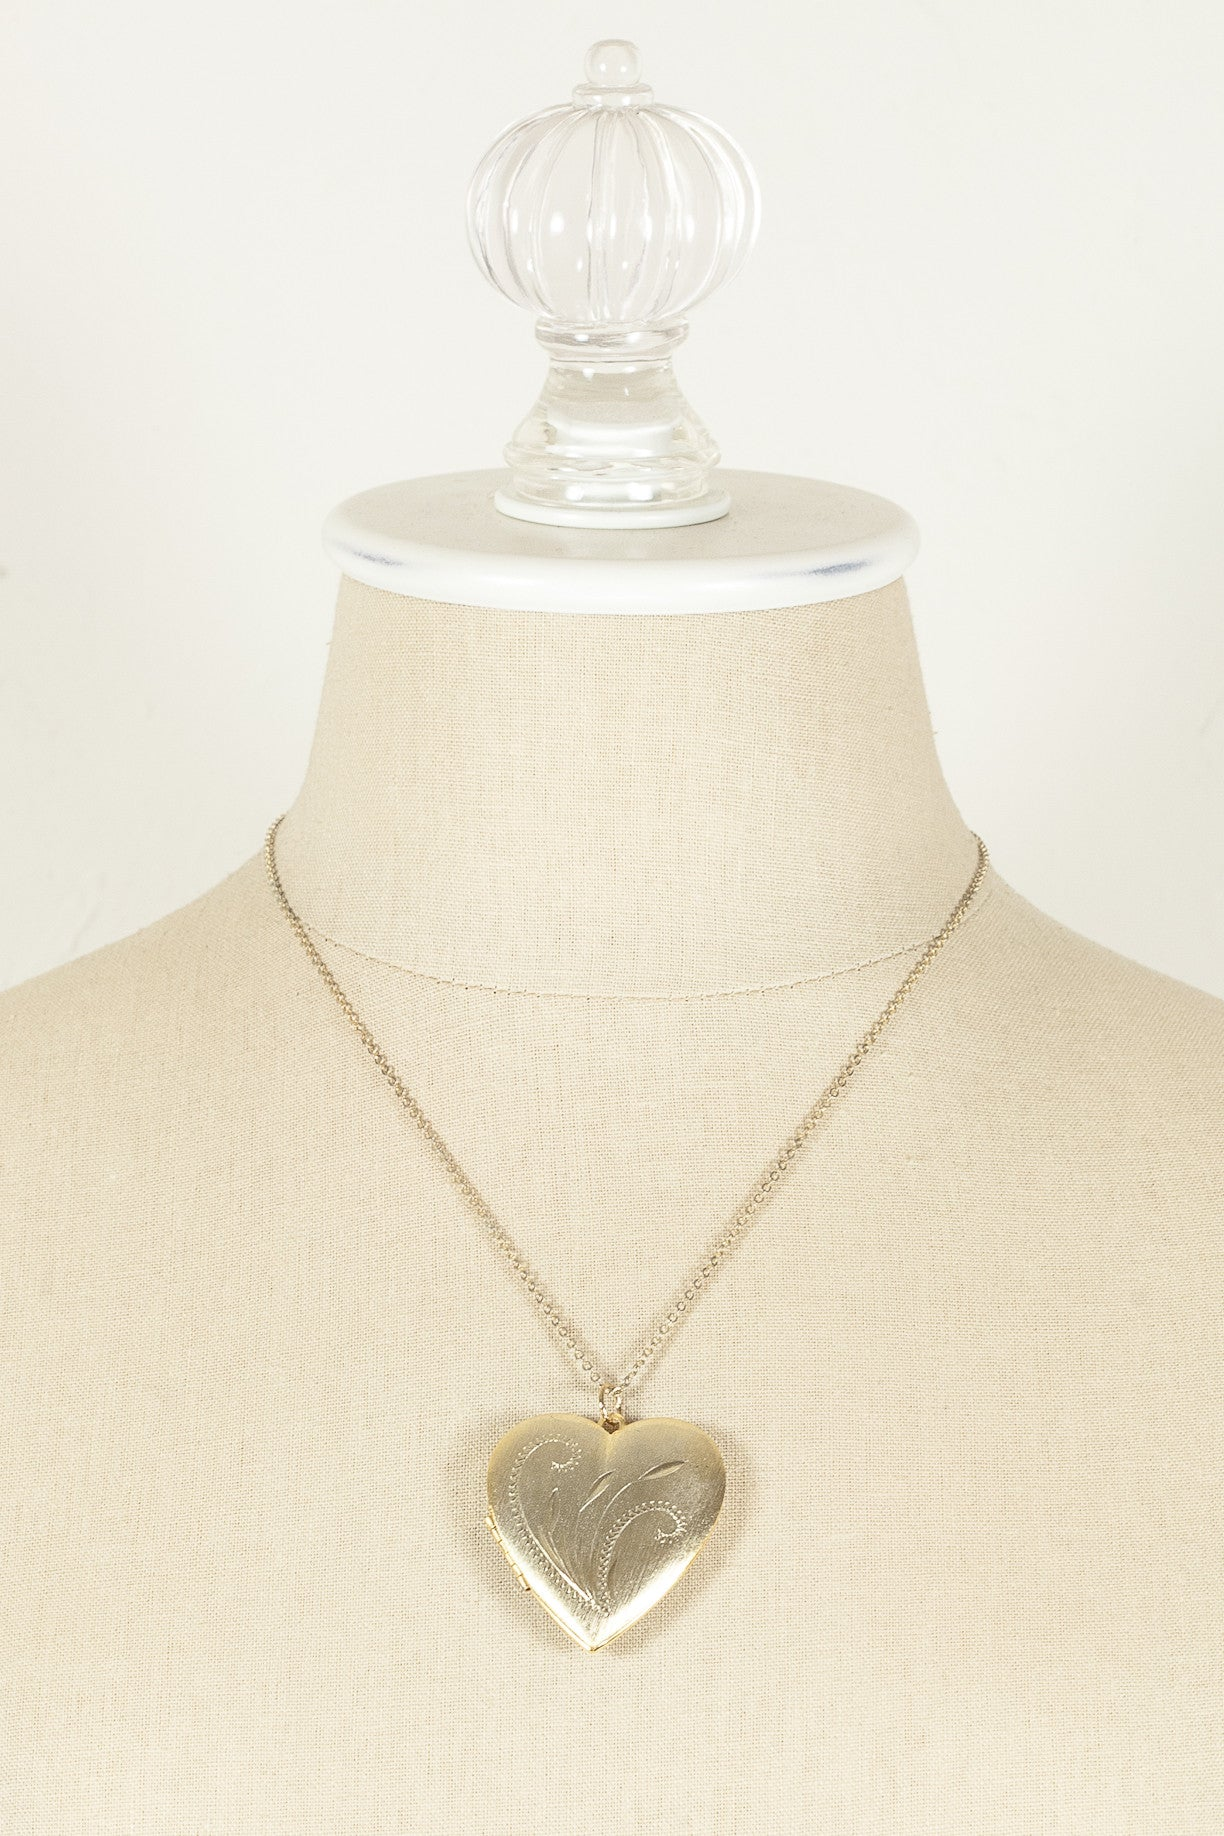 60's__Vintage__Heart Locket Pendant Necklace